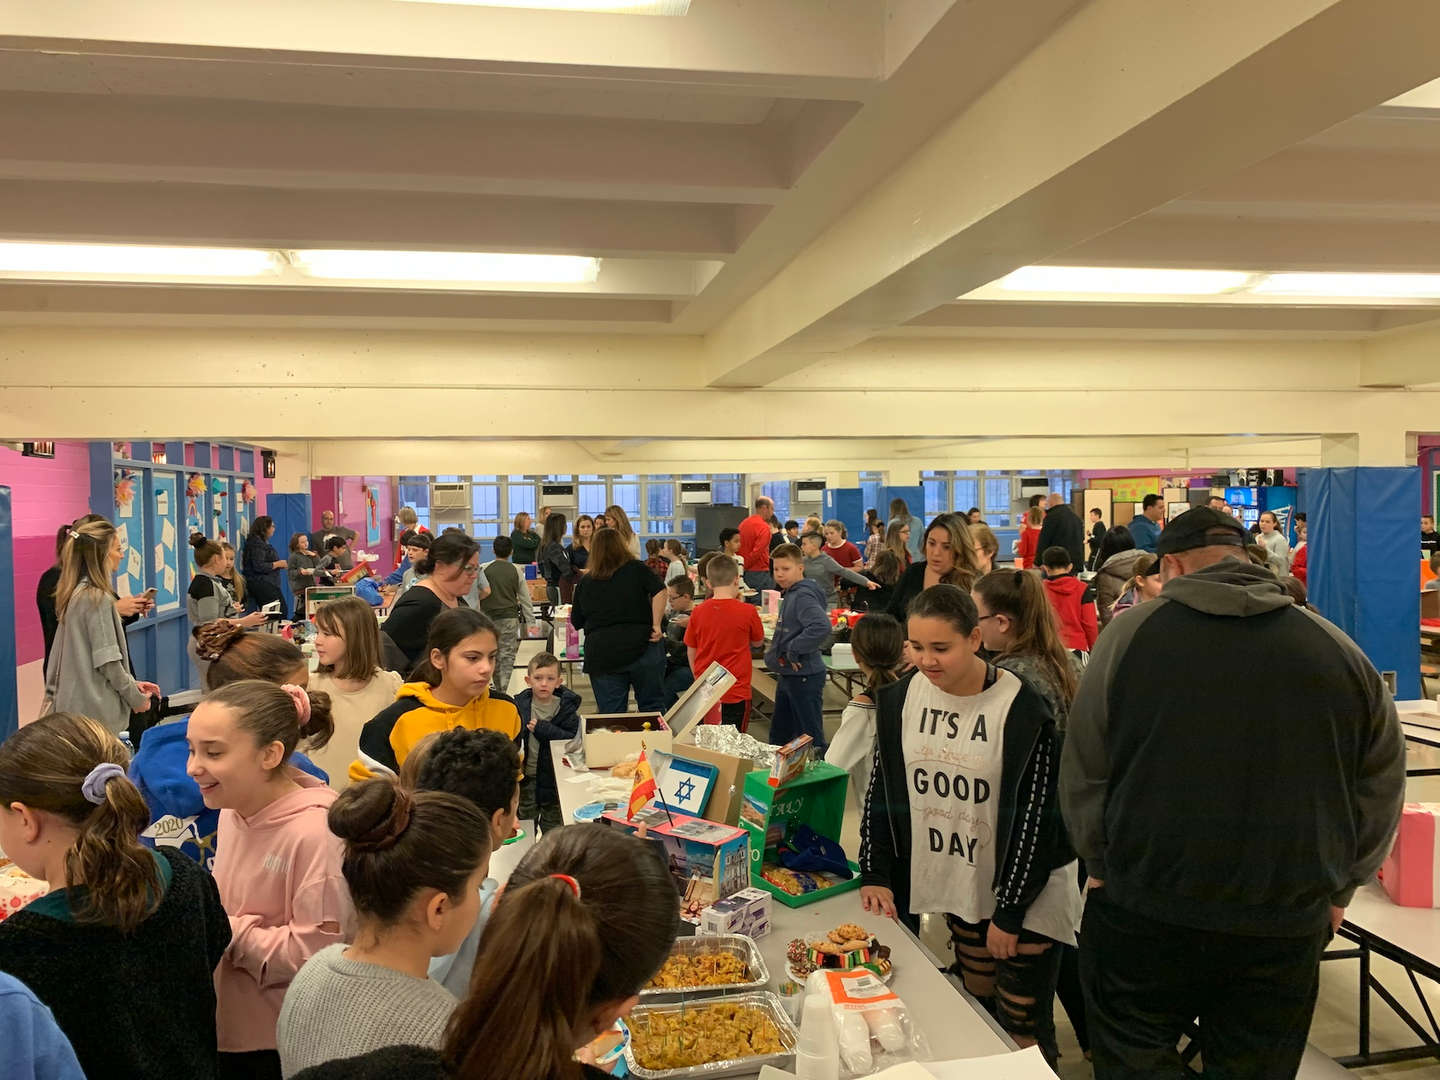 A view of the crowded room of people and food displays.